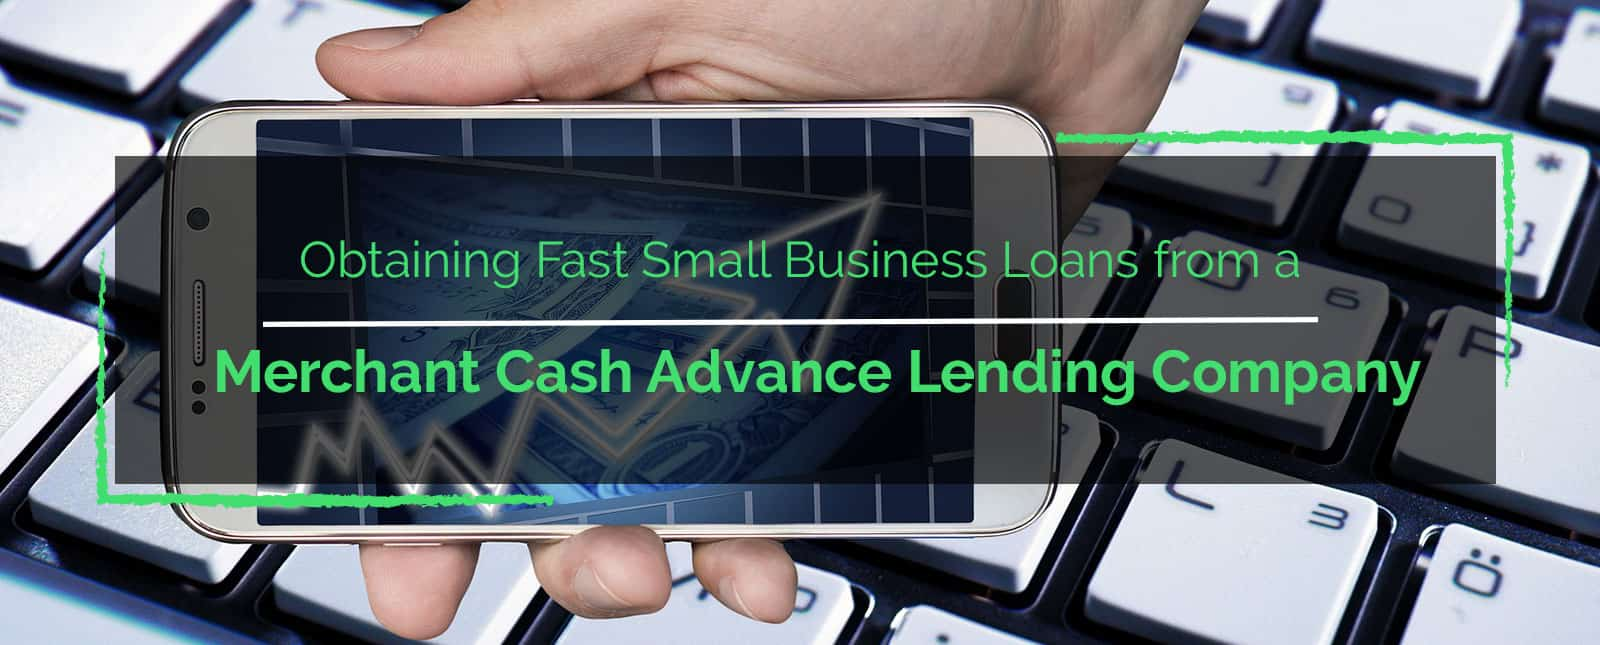 Raising Capital For Merchant Cash Advance Company